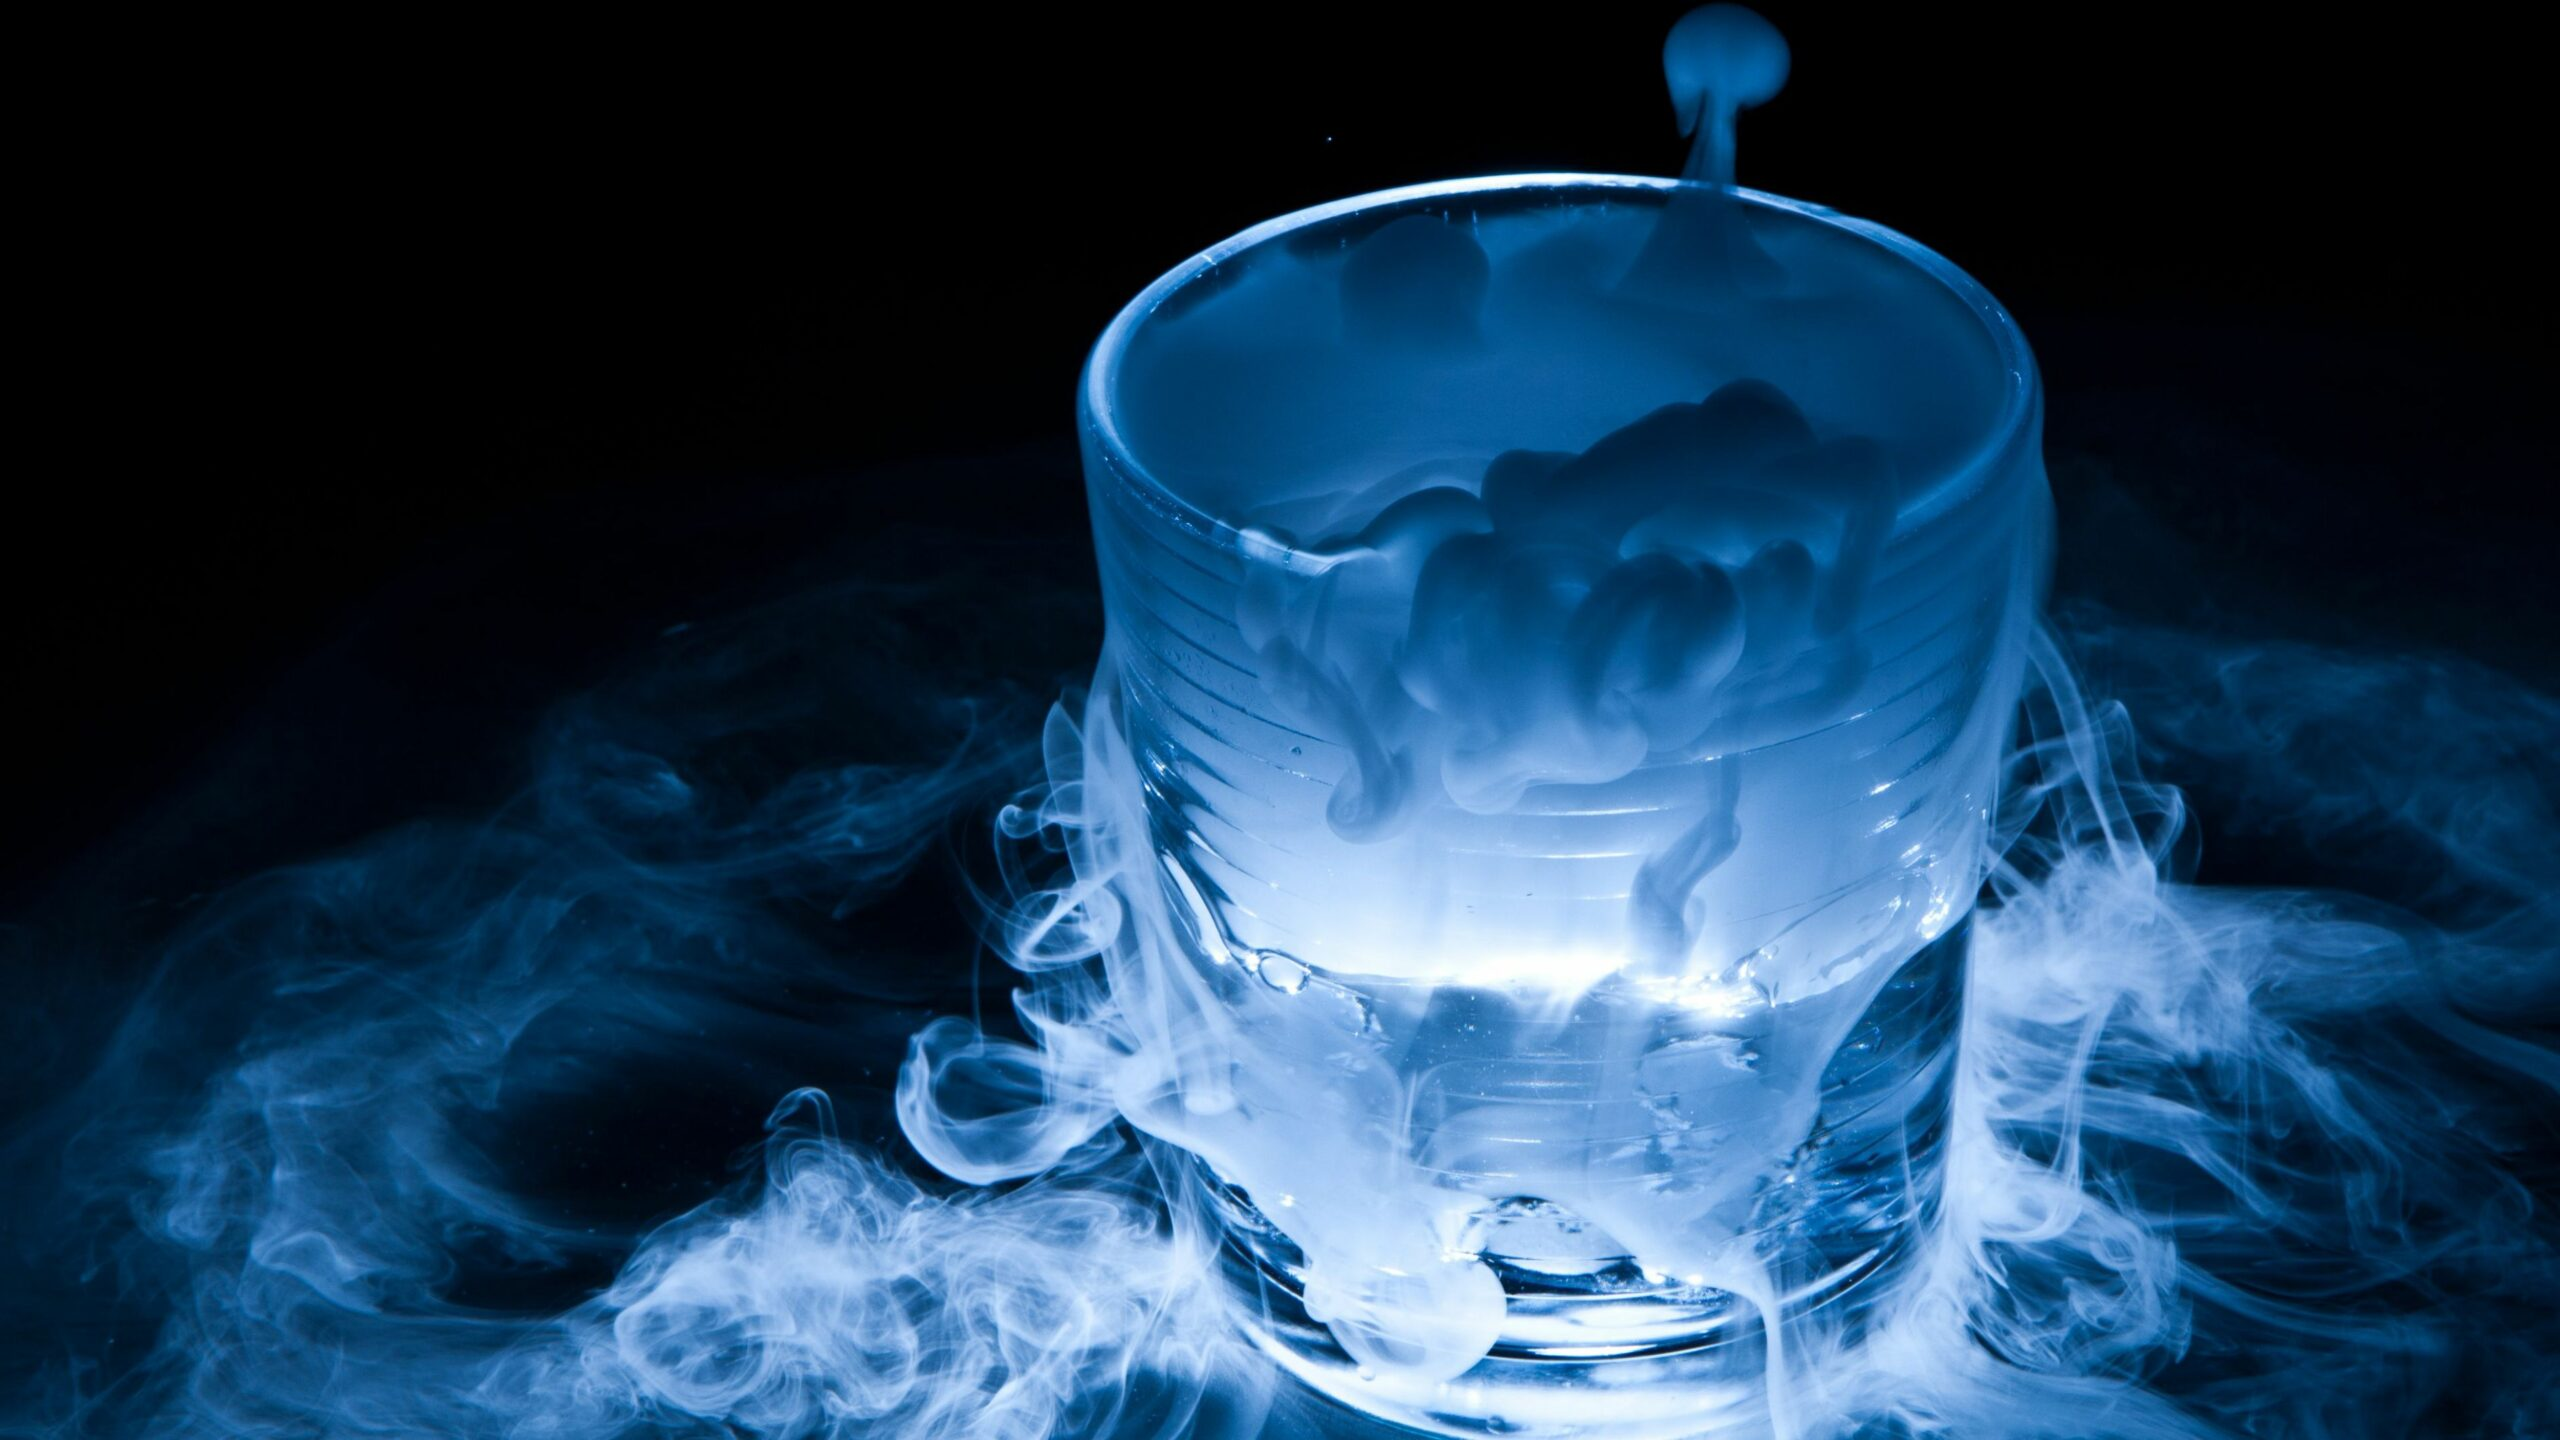 11 Cool Things To Do With Dry Ice